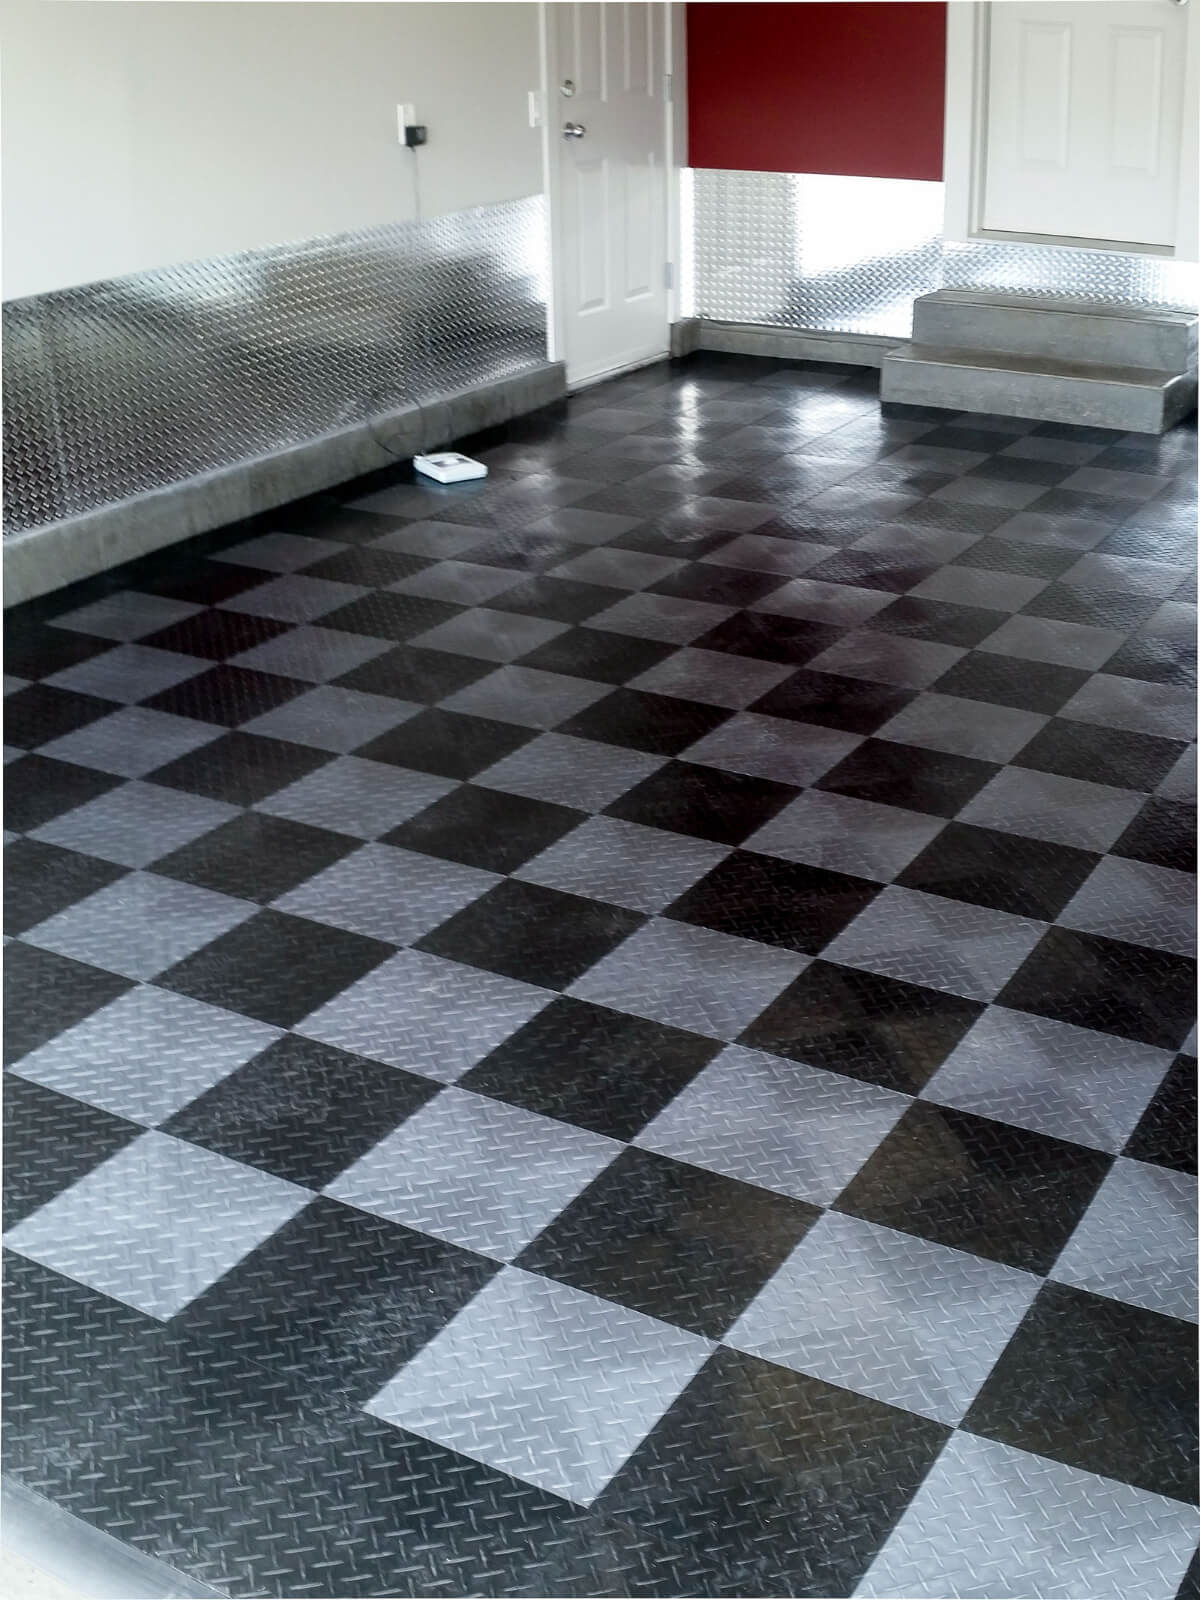 Finished garage with RaceDeck Diamond black and alloy flooring